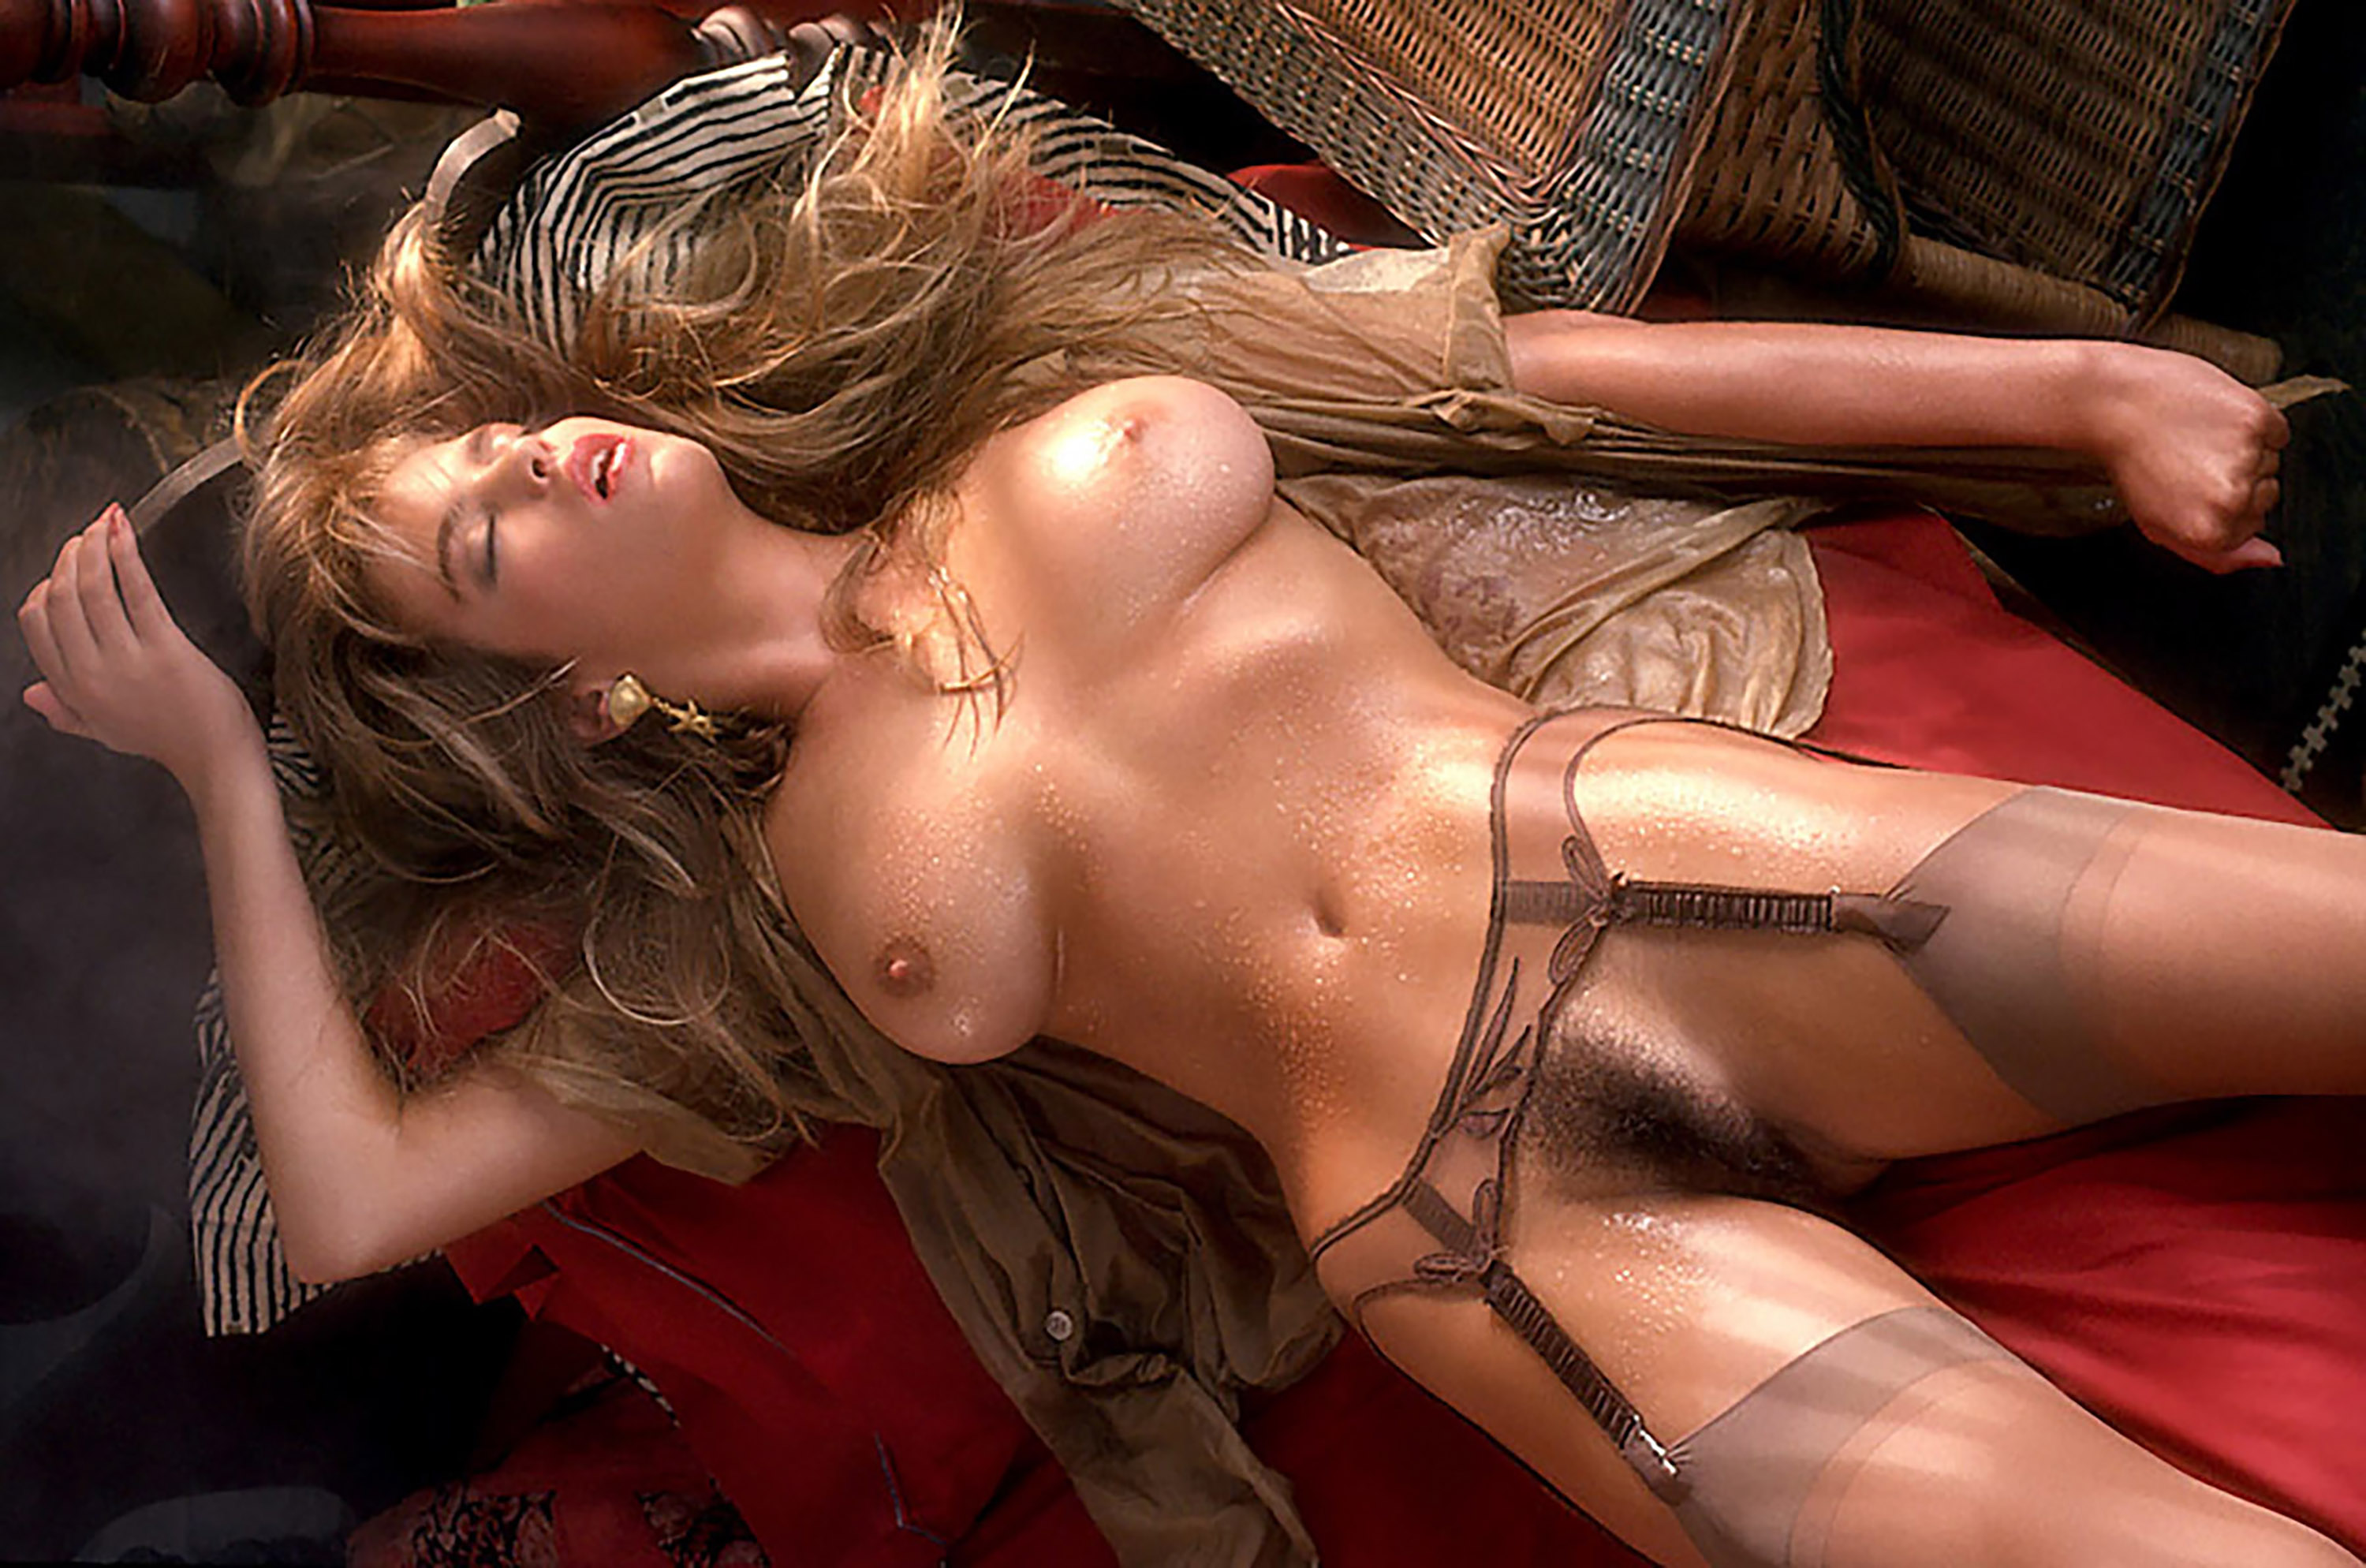 Wallpaper Gianna Amore, Stockings, Pussy, Tits, Boobs, Haired Pussy -2829